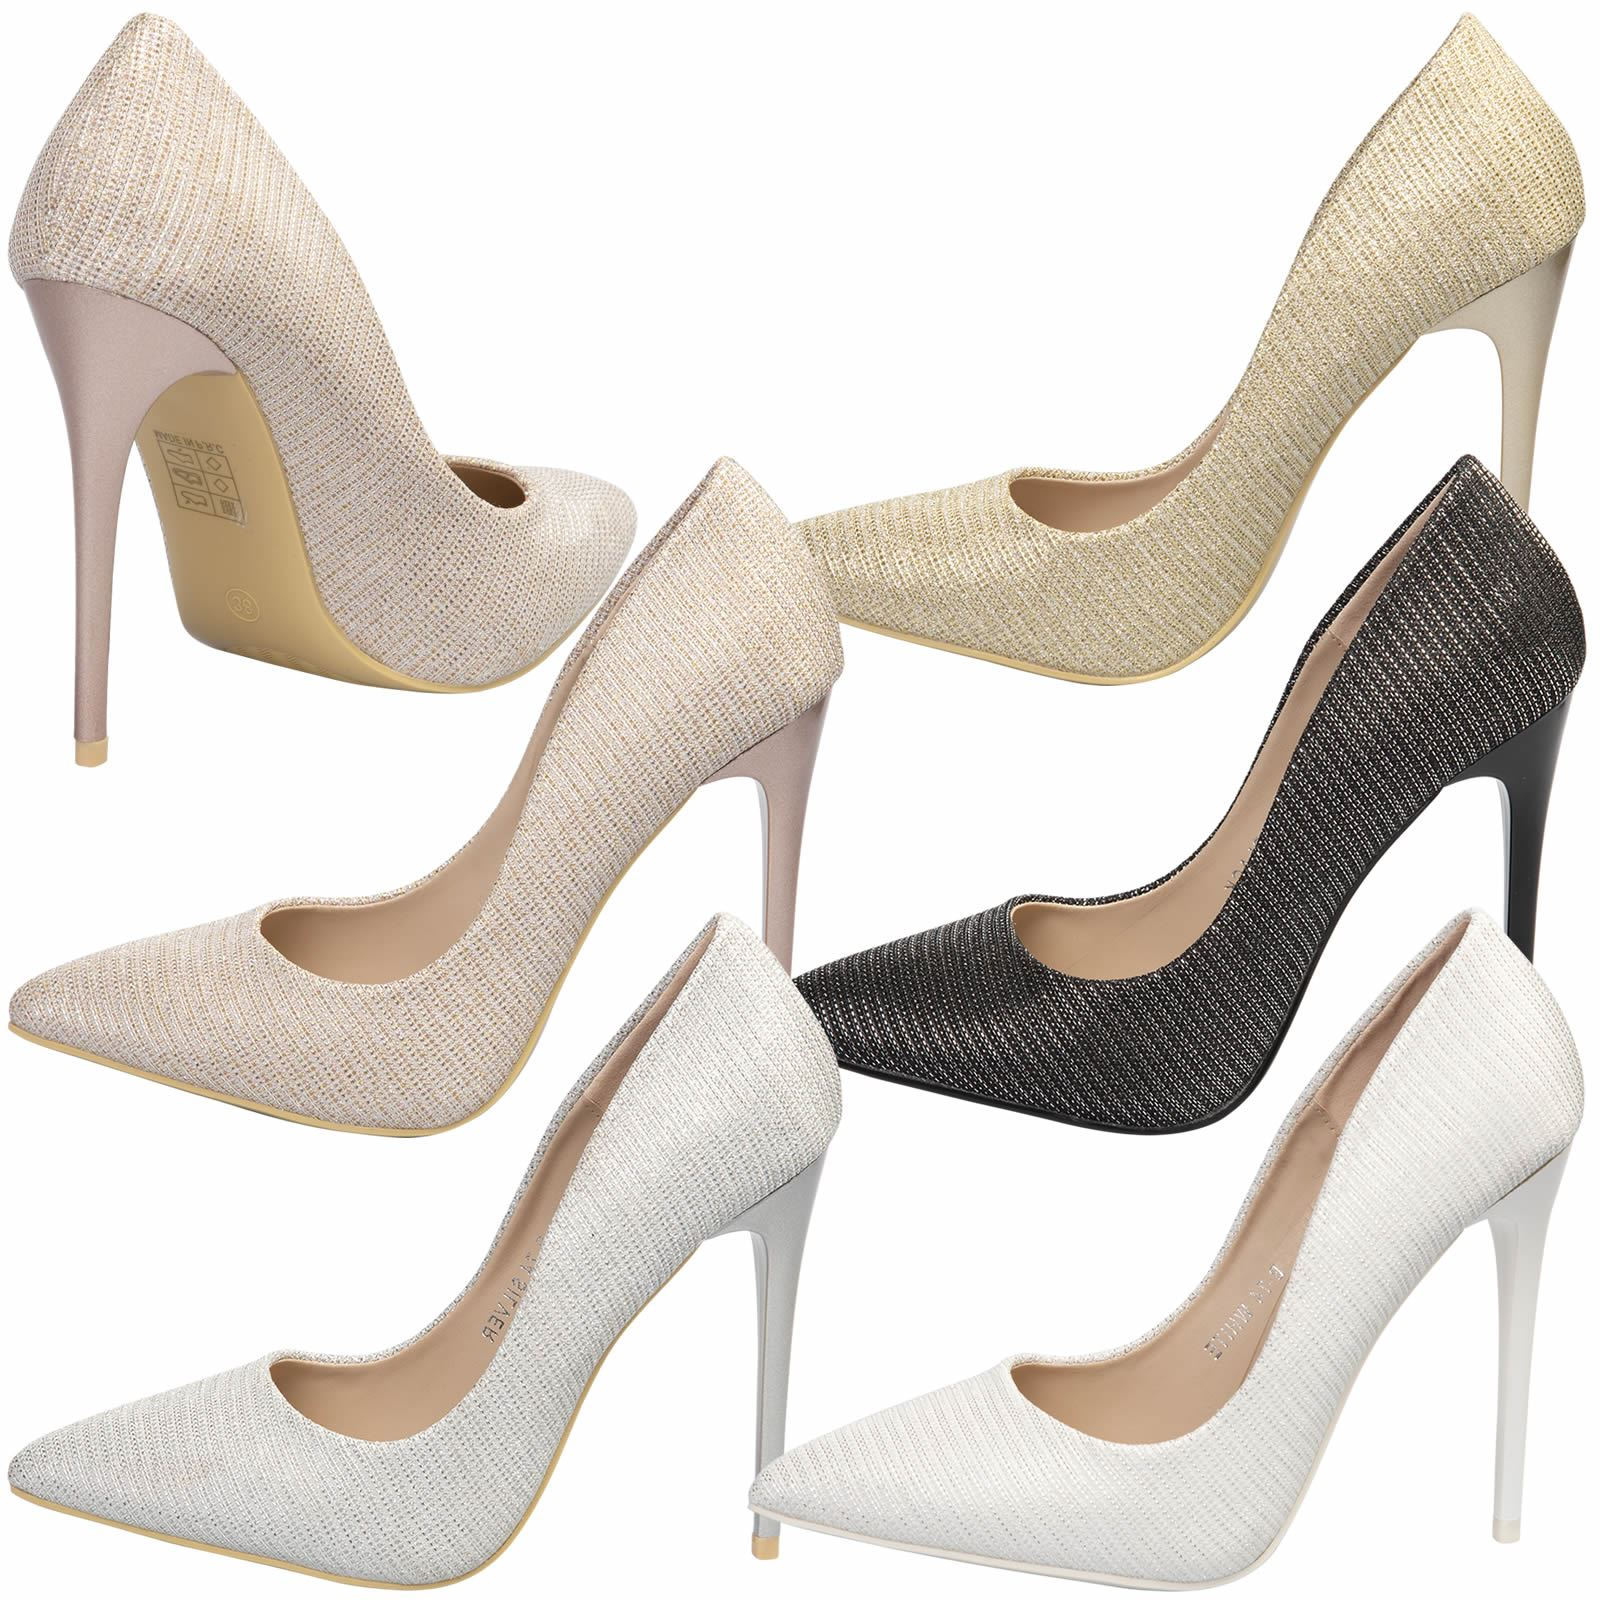 c8339ce70a33 Details about WOMENS SHOES LADIES PUMPS POINTY TOE METALLIC STILETTO PROM  PARTY BRIDAL WEDDING